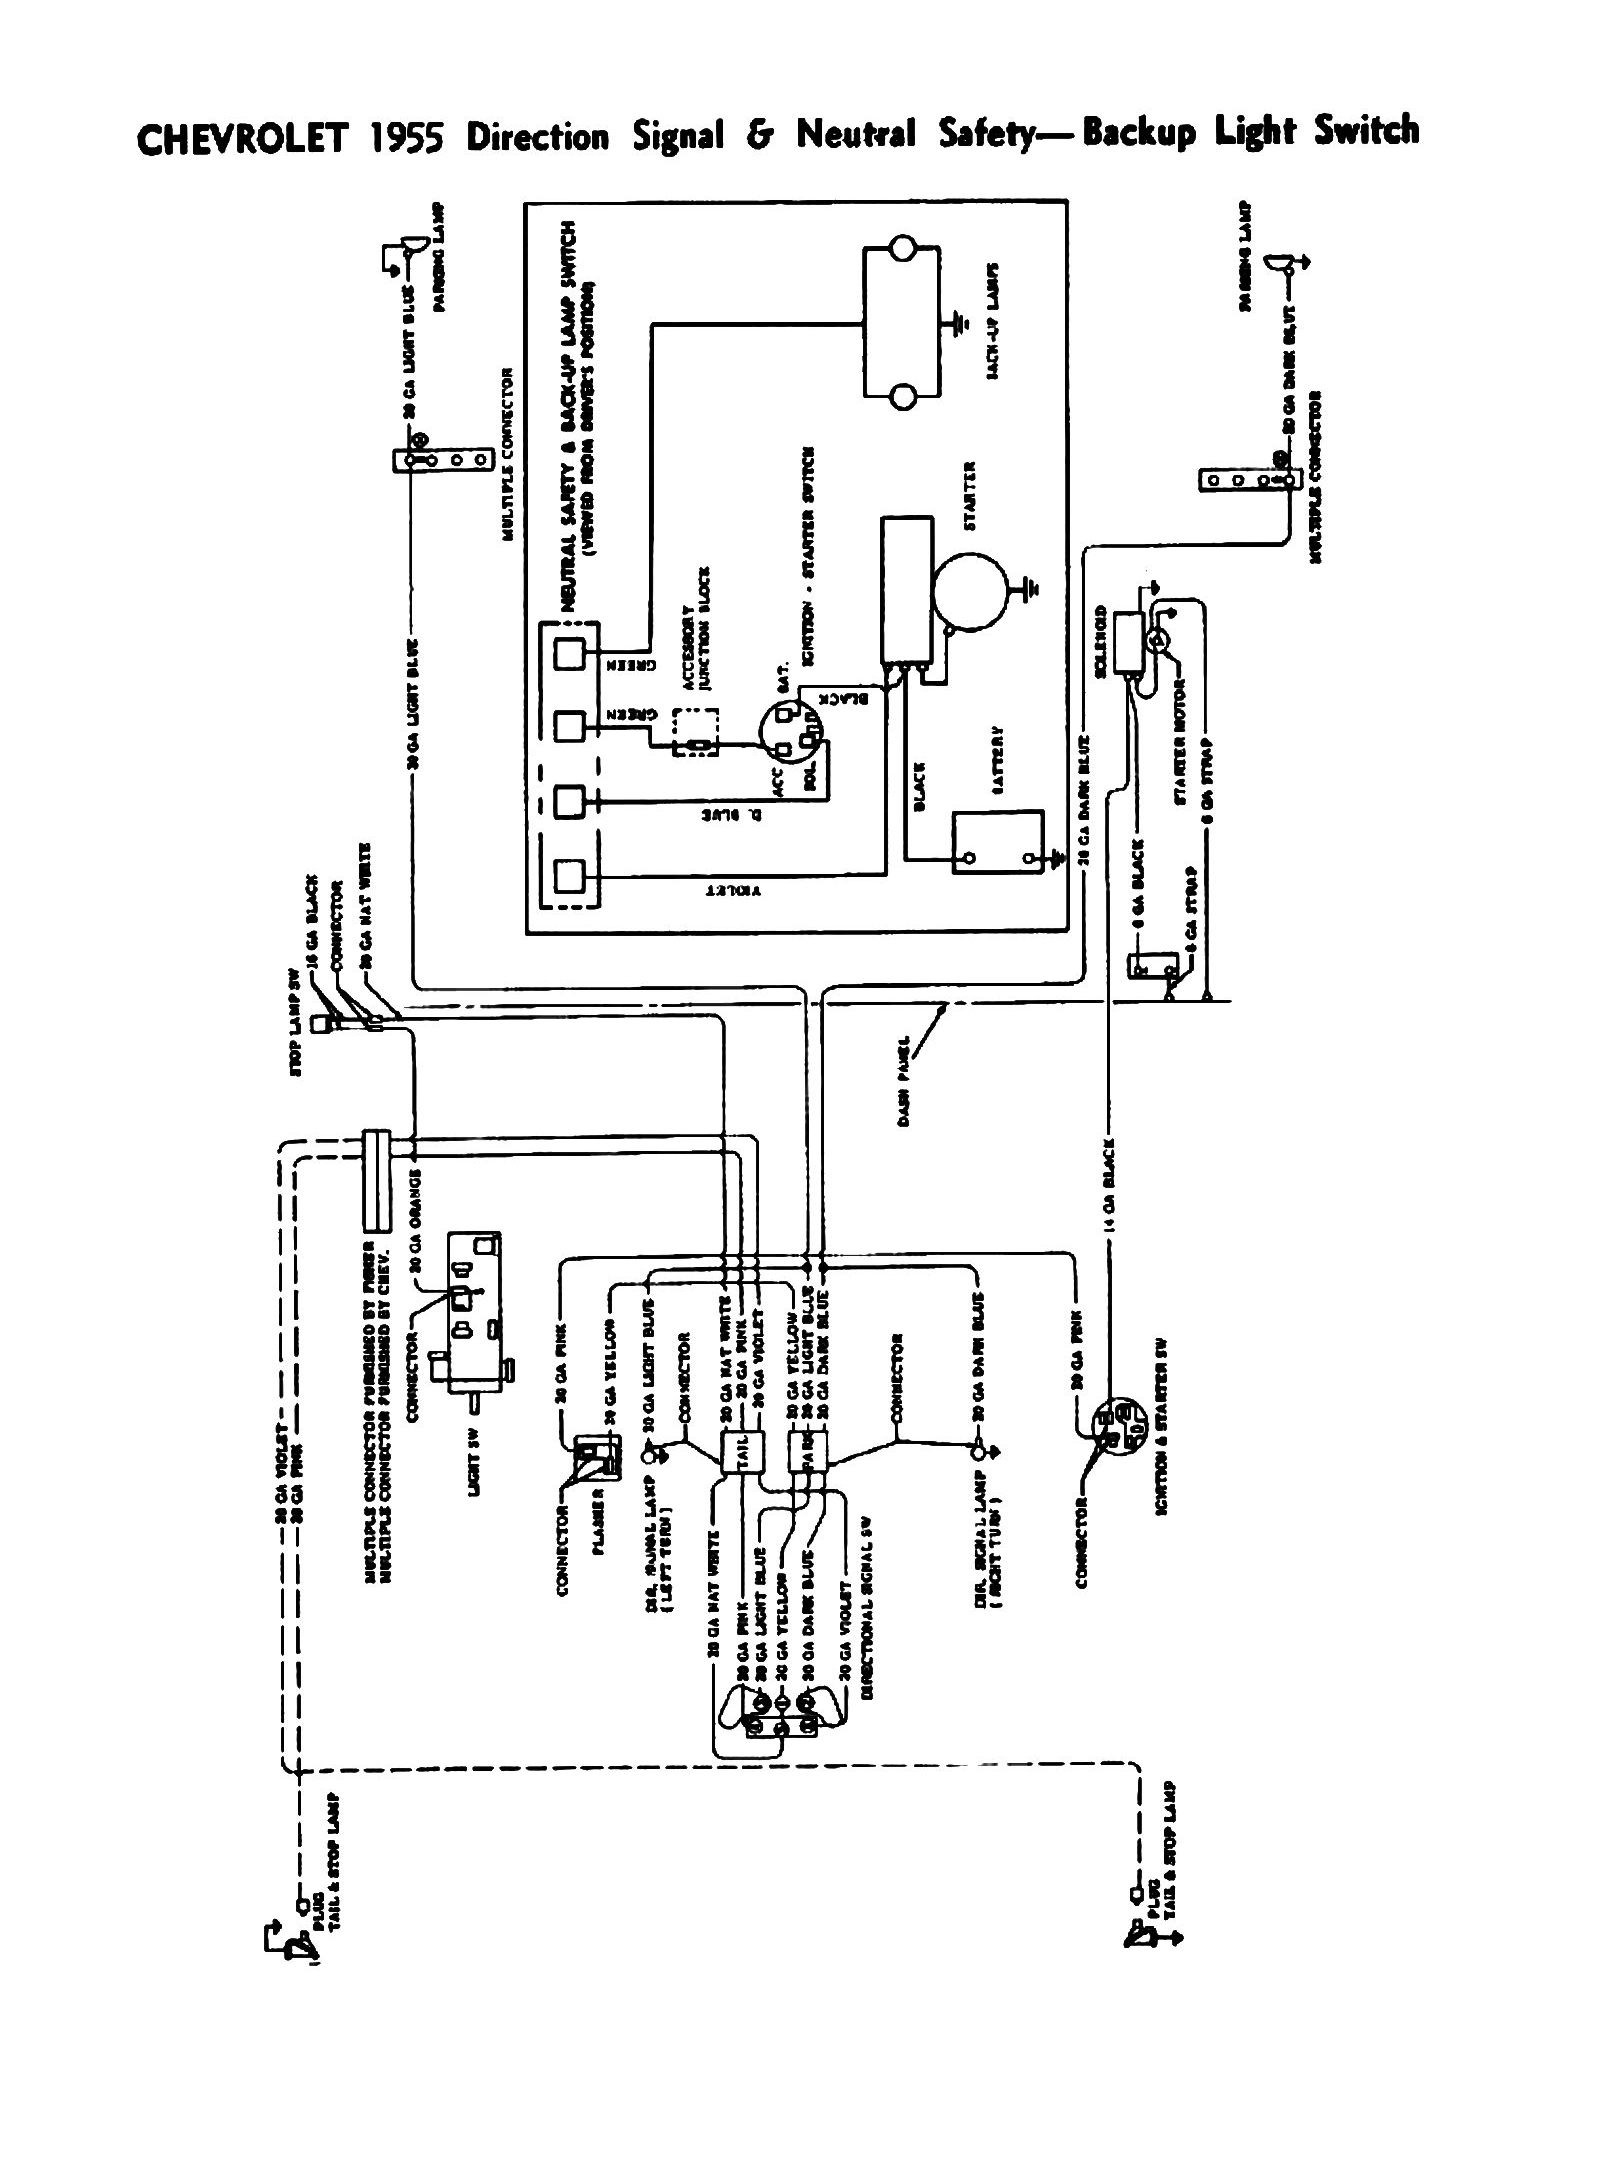 hight resolution of 1951 chevy truck wiring diagram 1957 chevy heater wiring diagram wiring diagrams of 1951 chevy truck